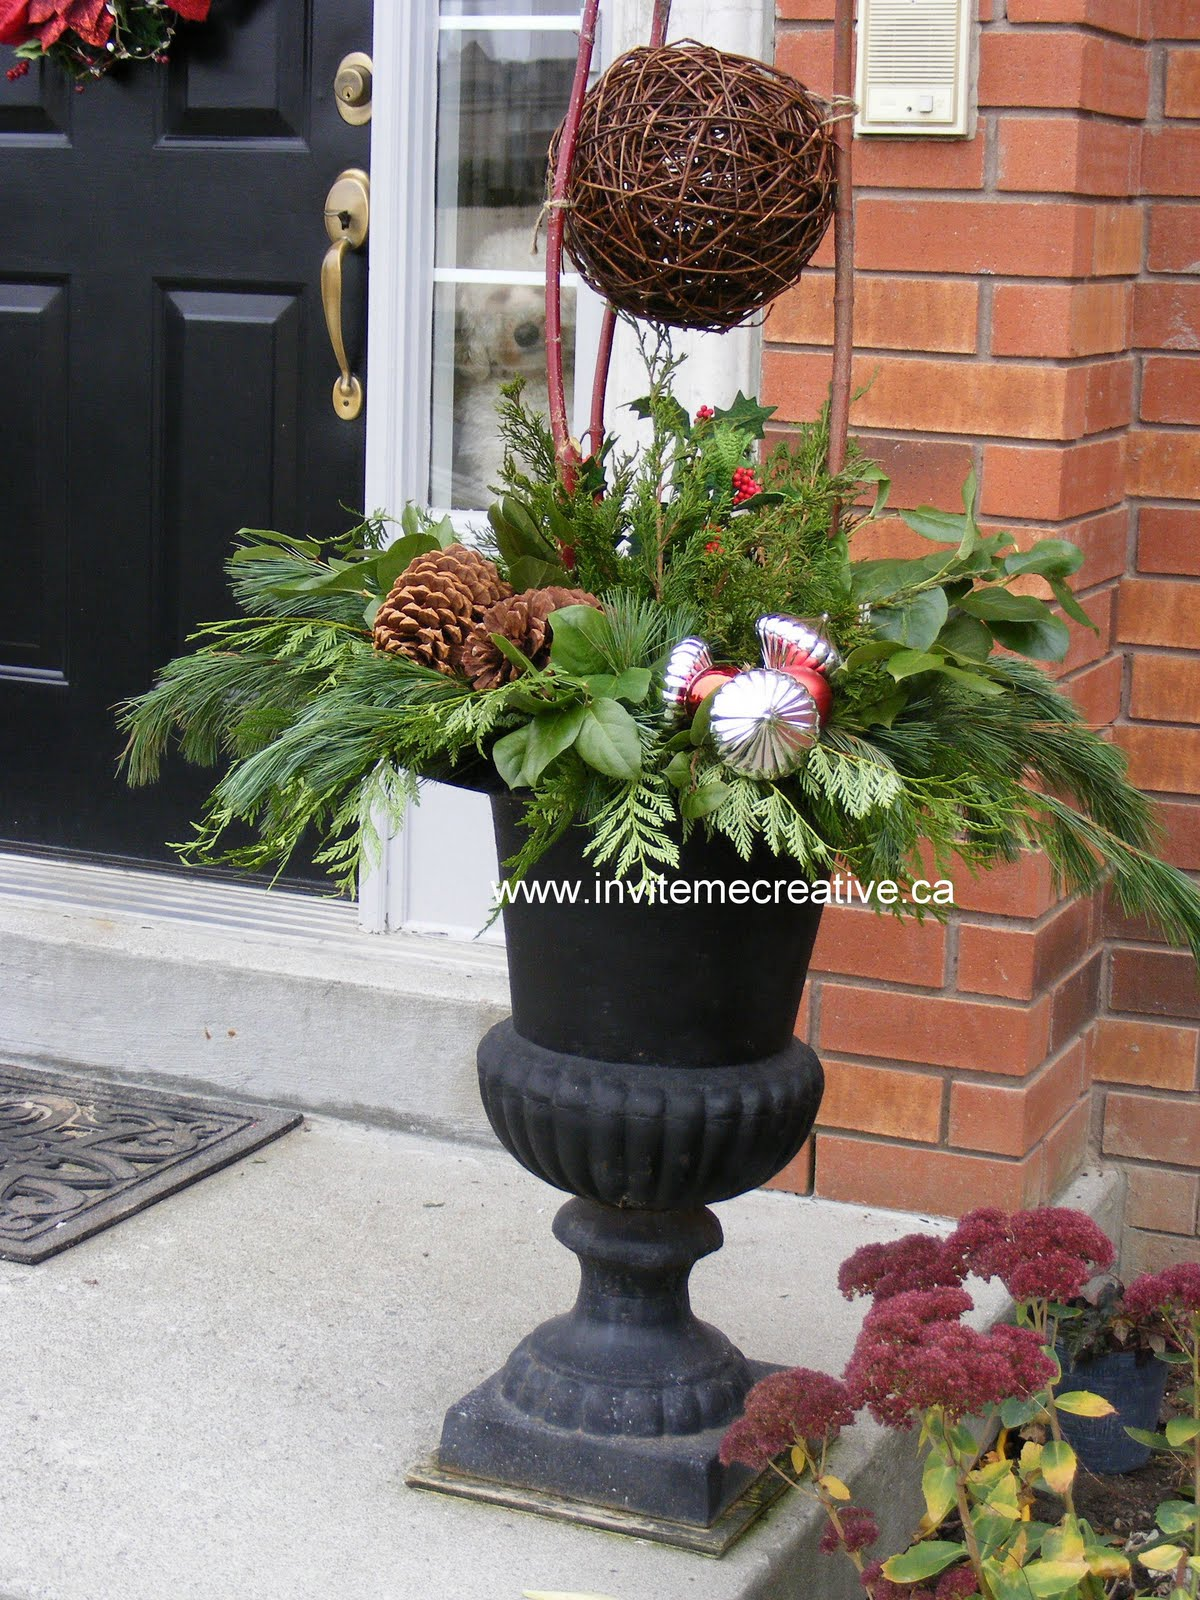 Outdoor Christmas Urns http://invitemecreativeannouncements.blogspot.com/2009/11/outdoor-decorative-urns-for-holidays.html